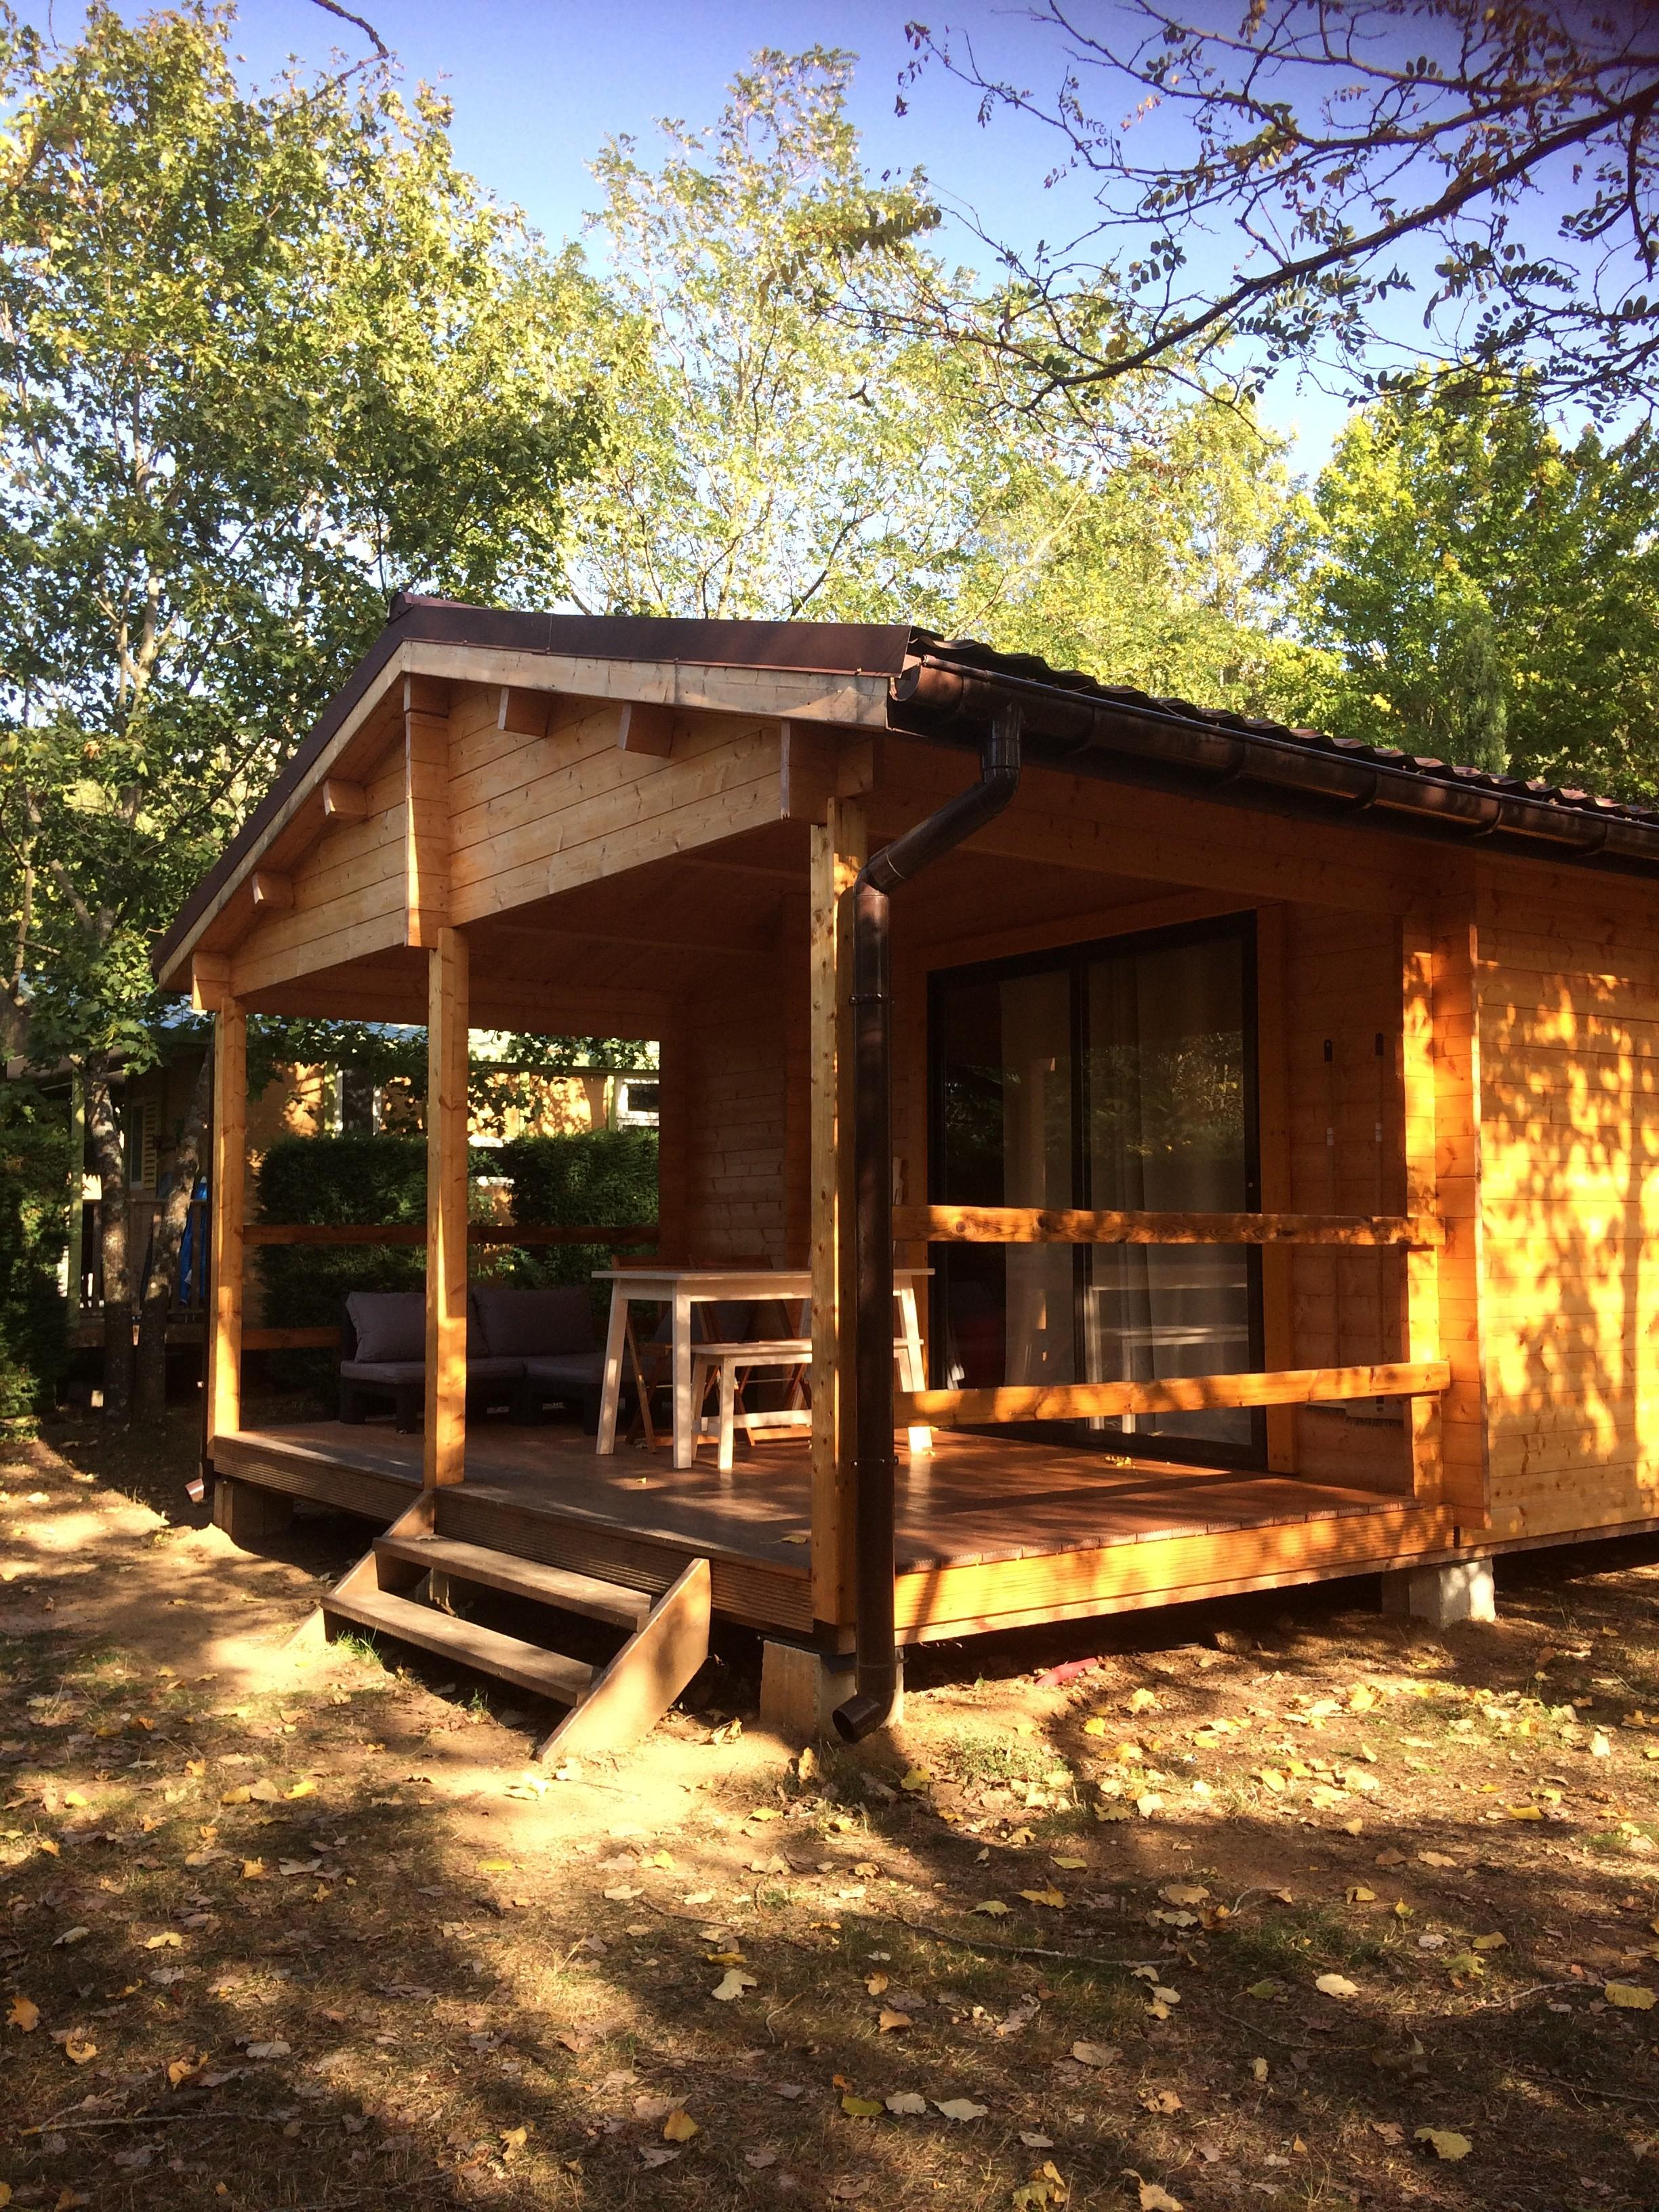 Accommodation - Chalet Green Cottage 4 Persons 2 Bedrooms - Sites et Paysages L'Oasis